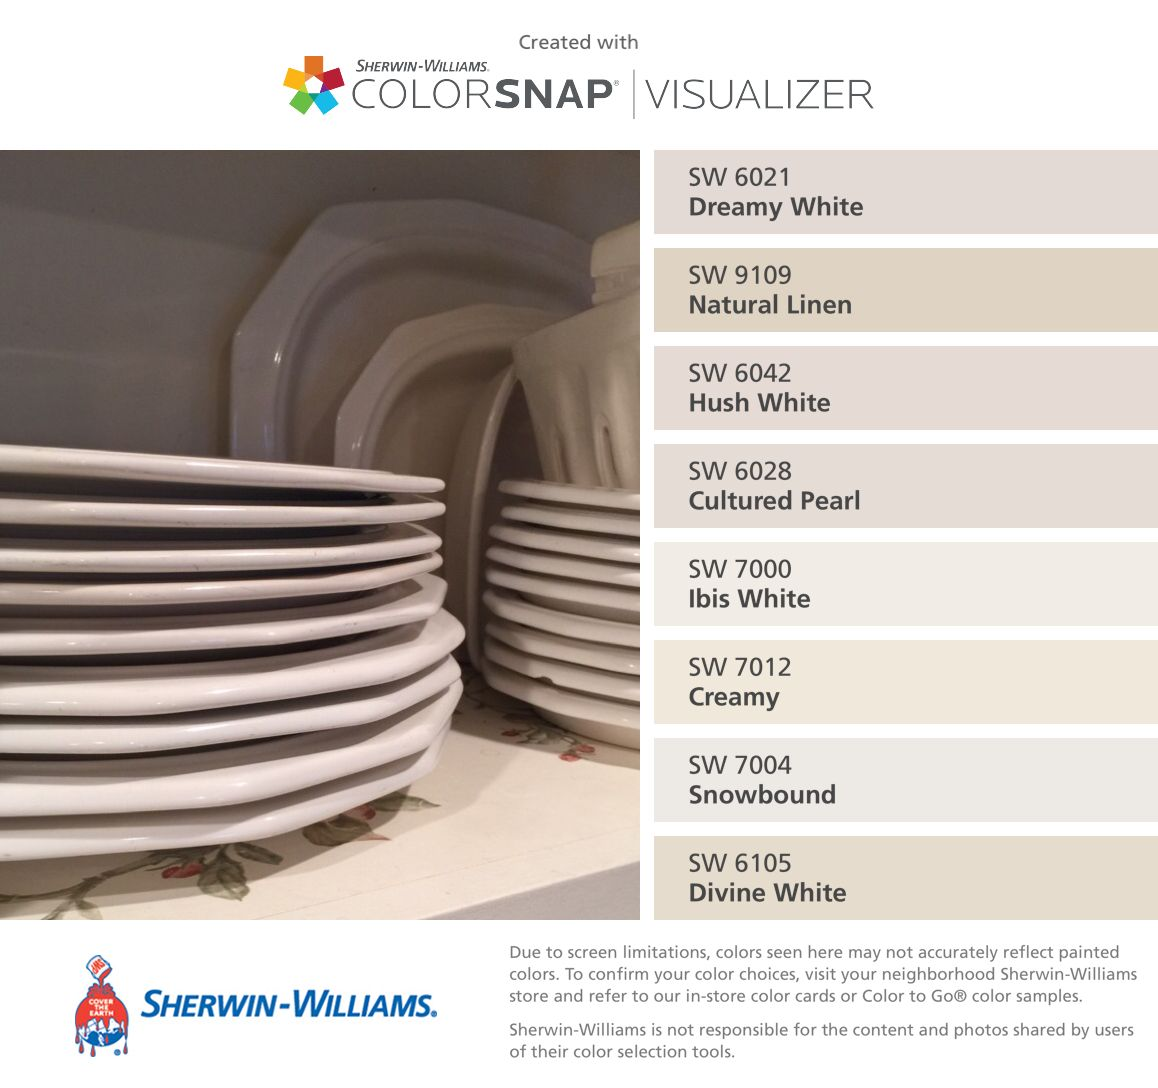 I Found These Colors With Colorsnap Visualizer For Iphone By Sherwin Williams Dreamy White Sw 6021 Natural Linen 9109 Hush 6042